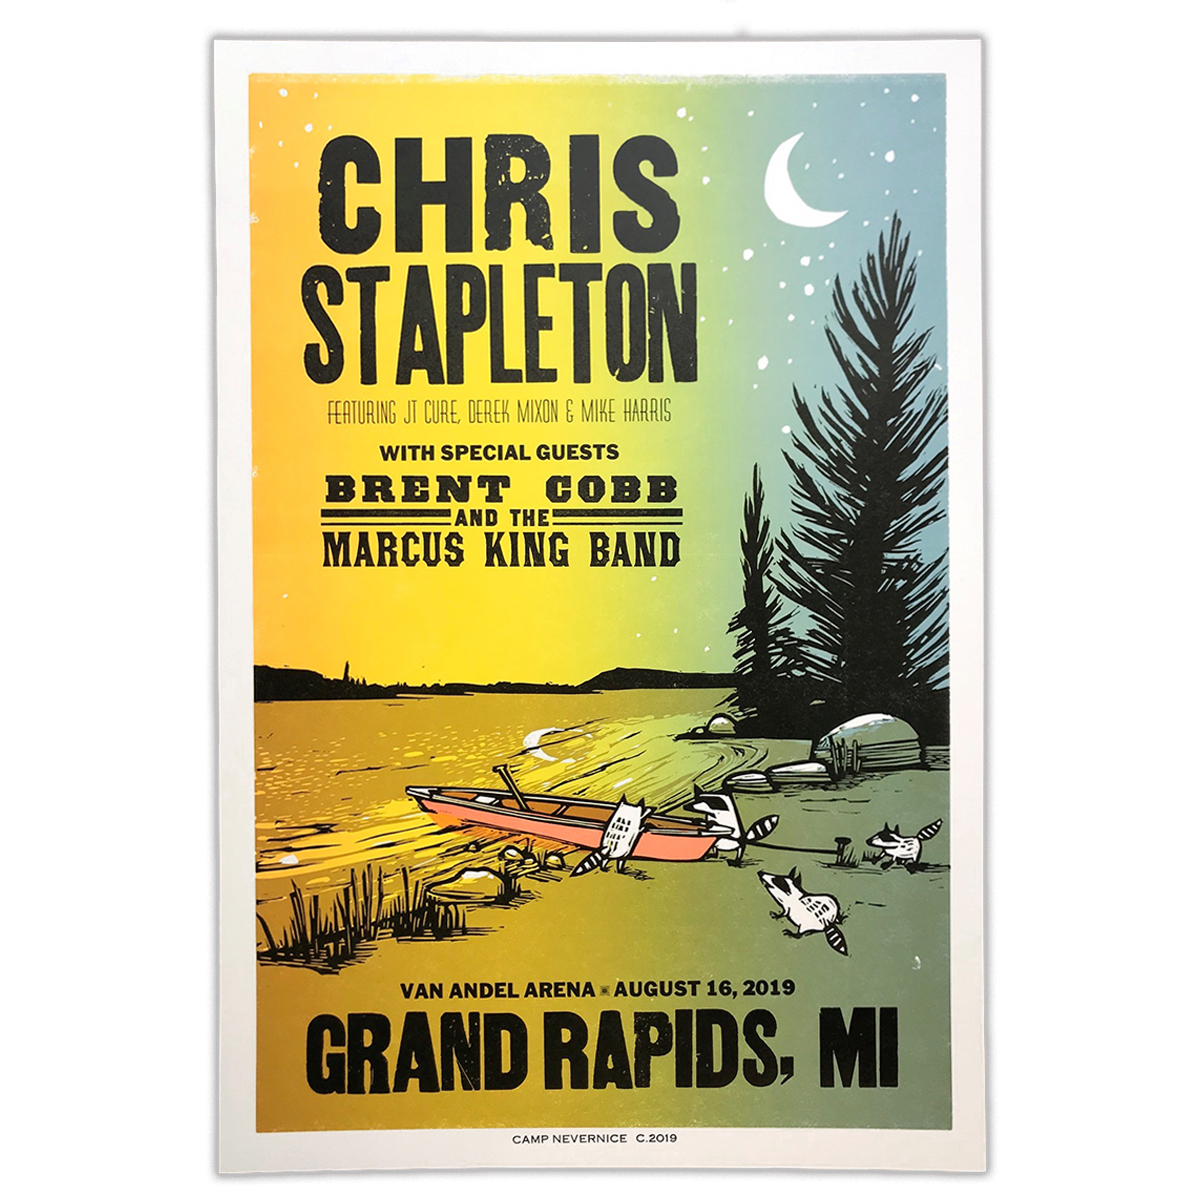 Chris Stapleton Show Poster – Grand Rapids, MI 8/16/19